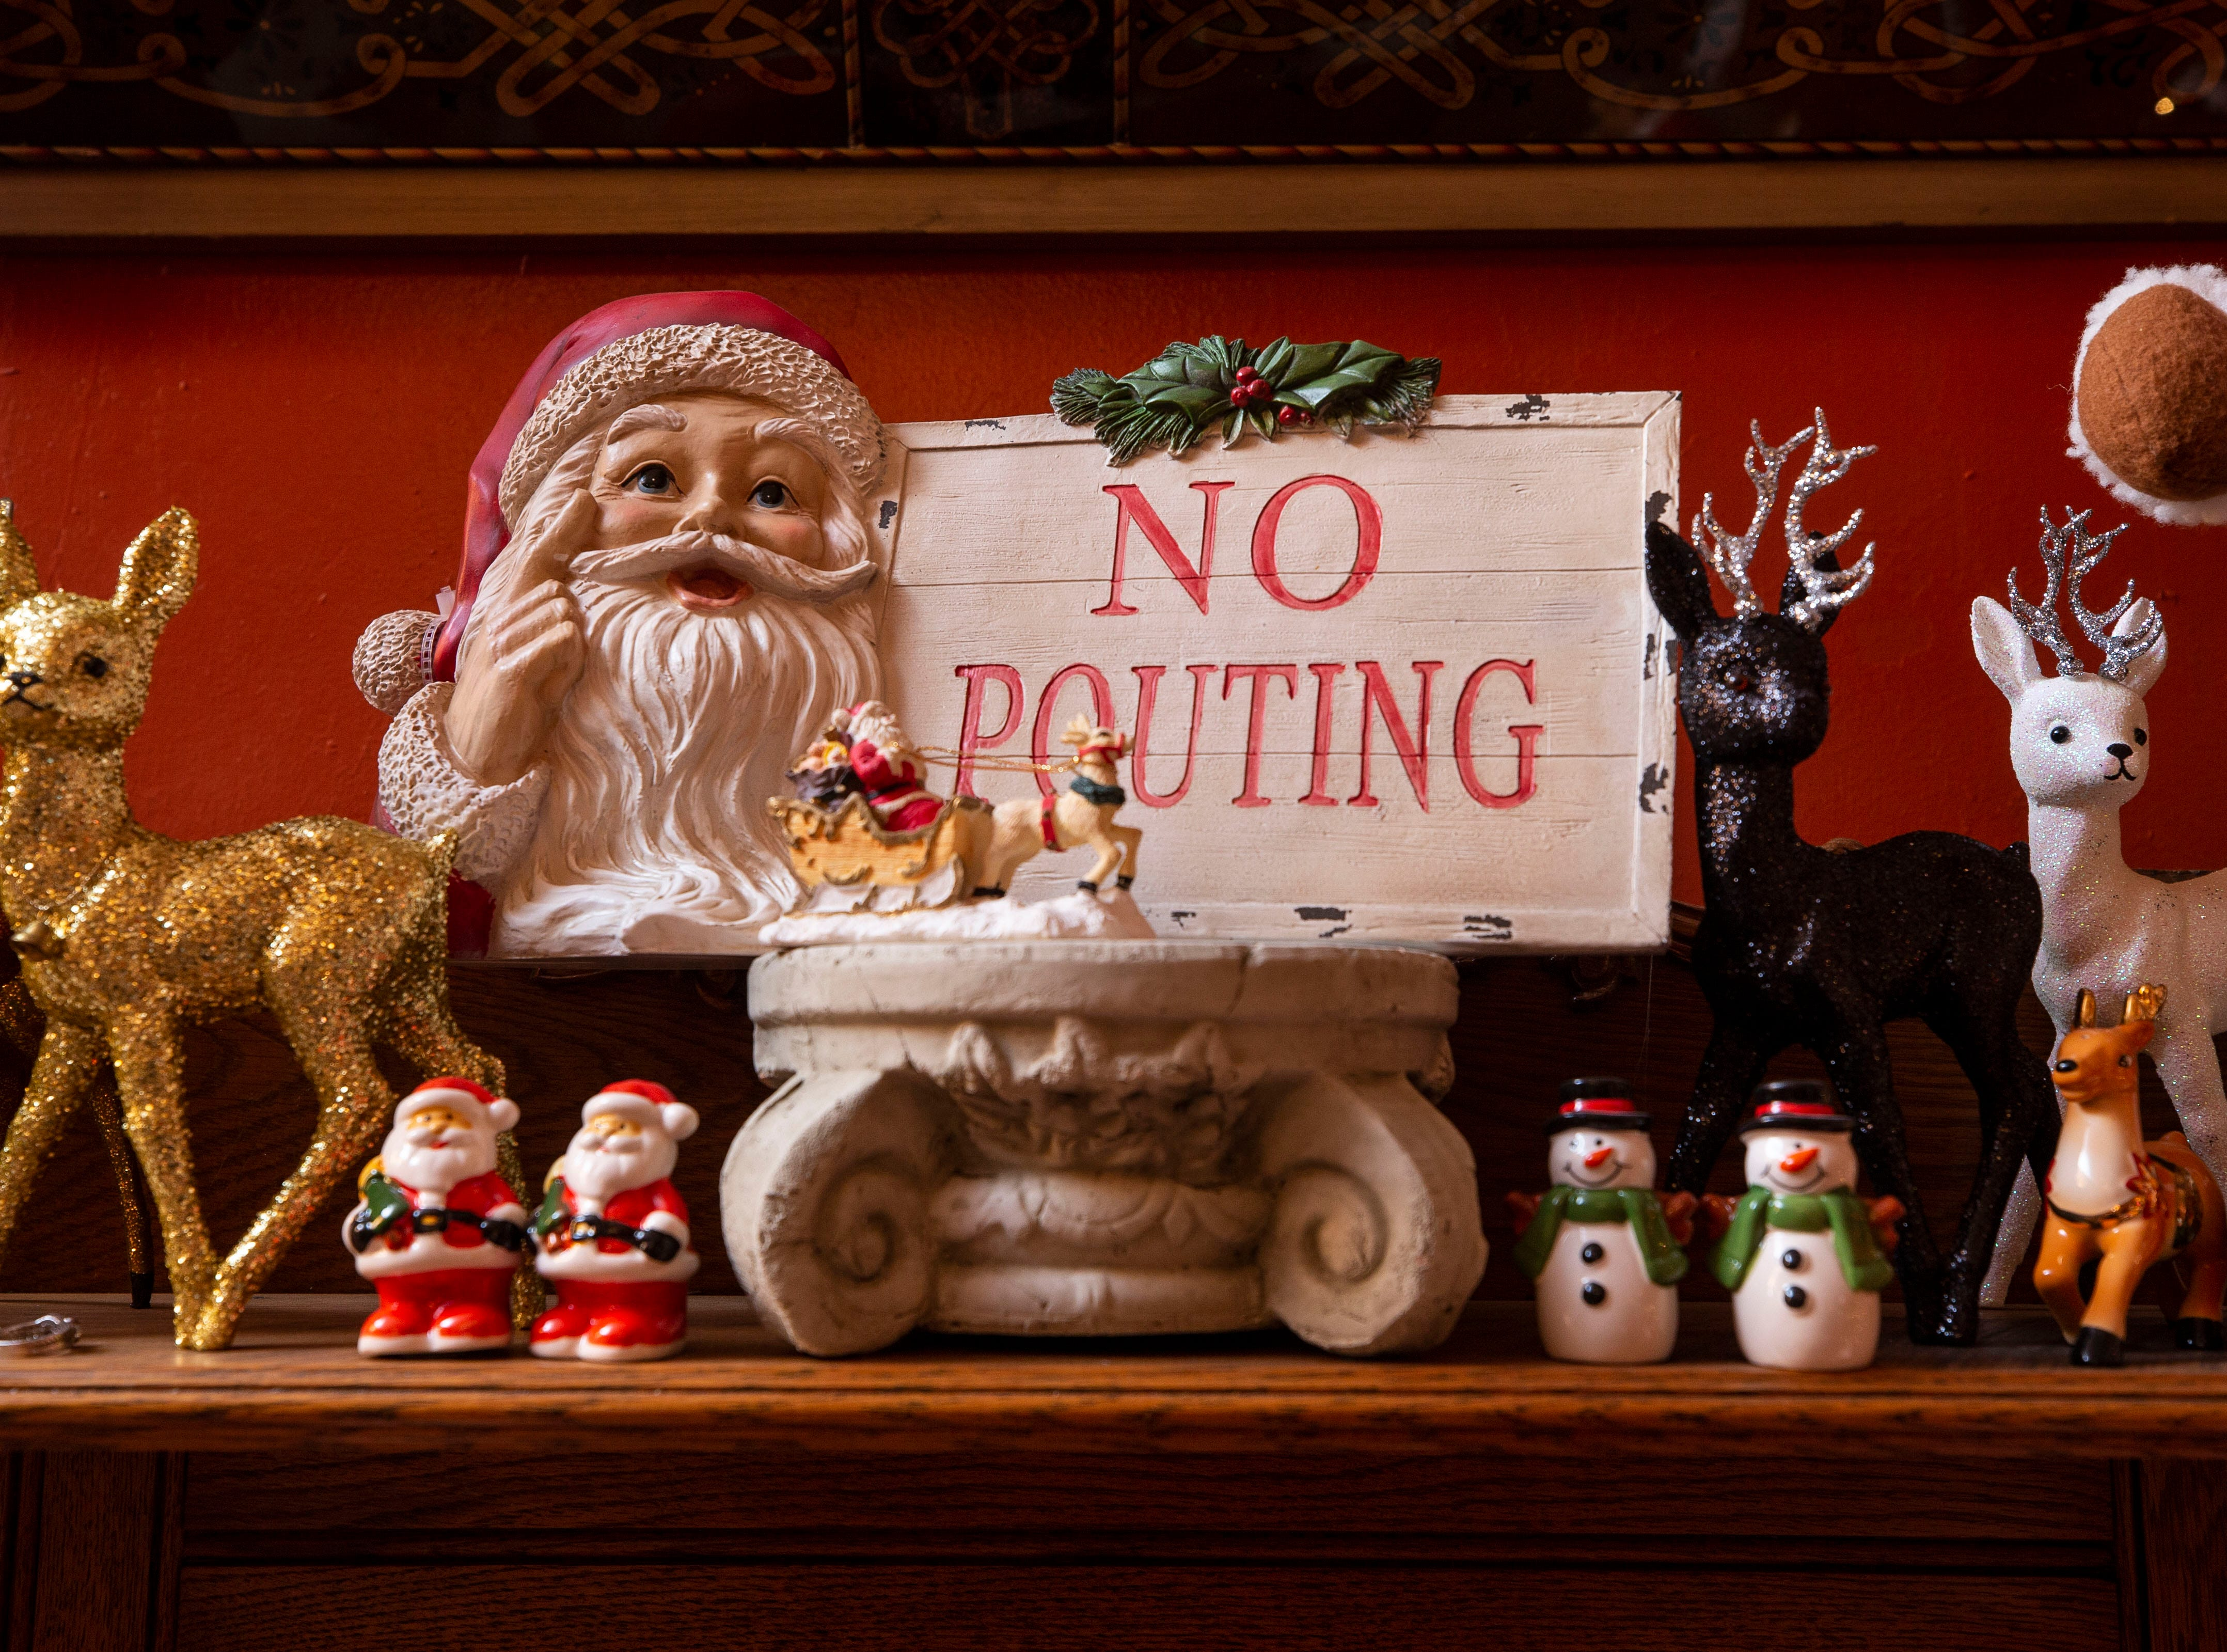 You won't find pouting inside the David Brown home as thousands of holiday decorations and lights fill the 6,000-square foot home.